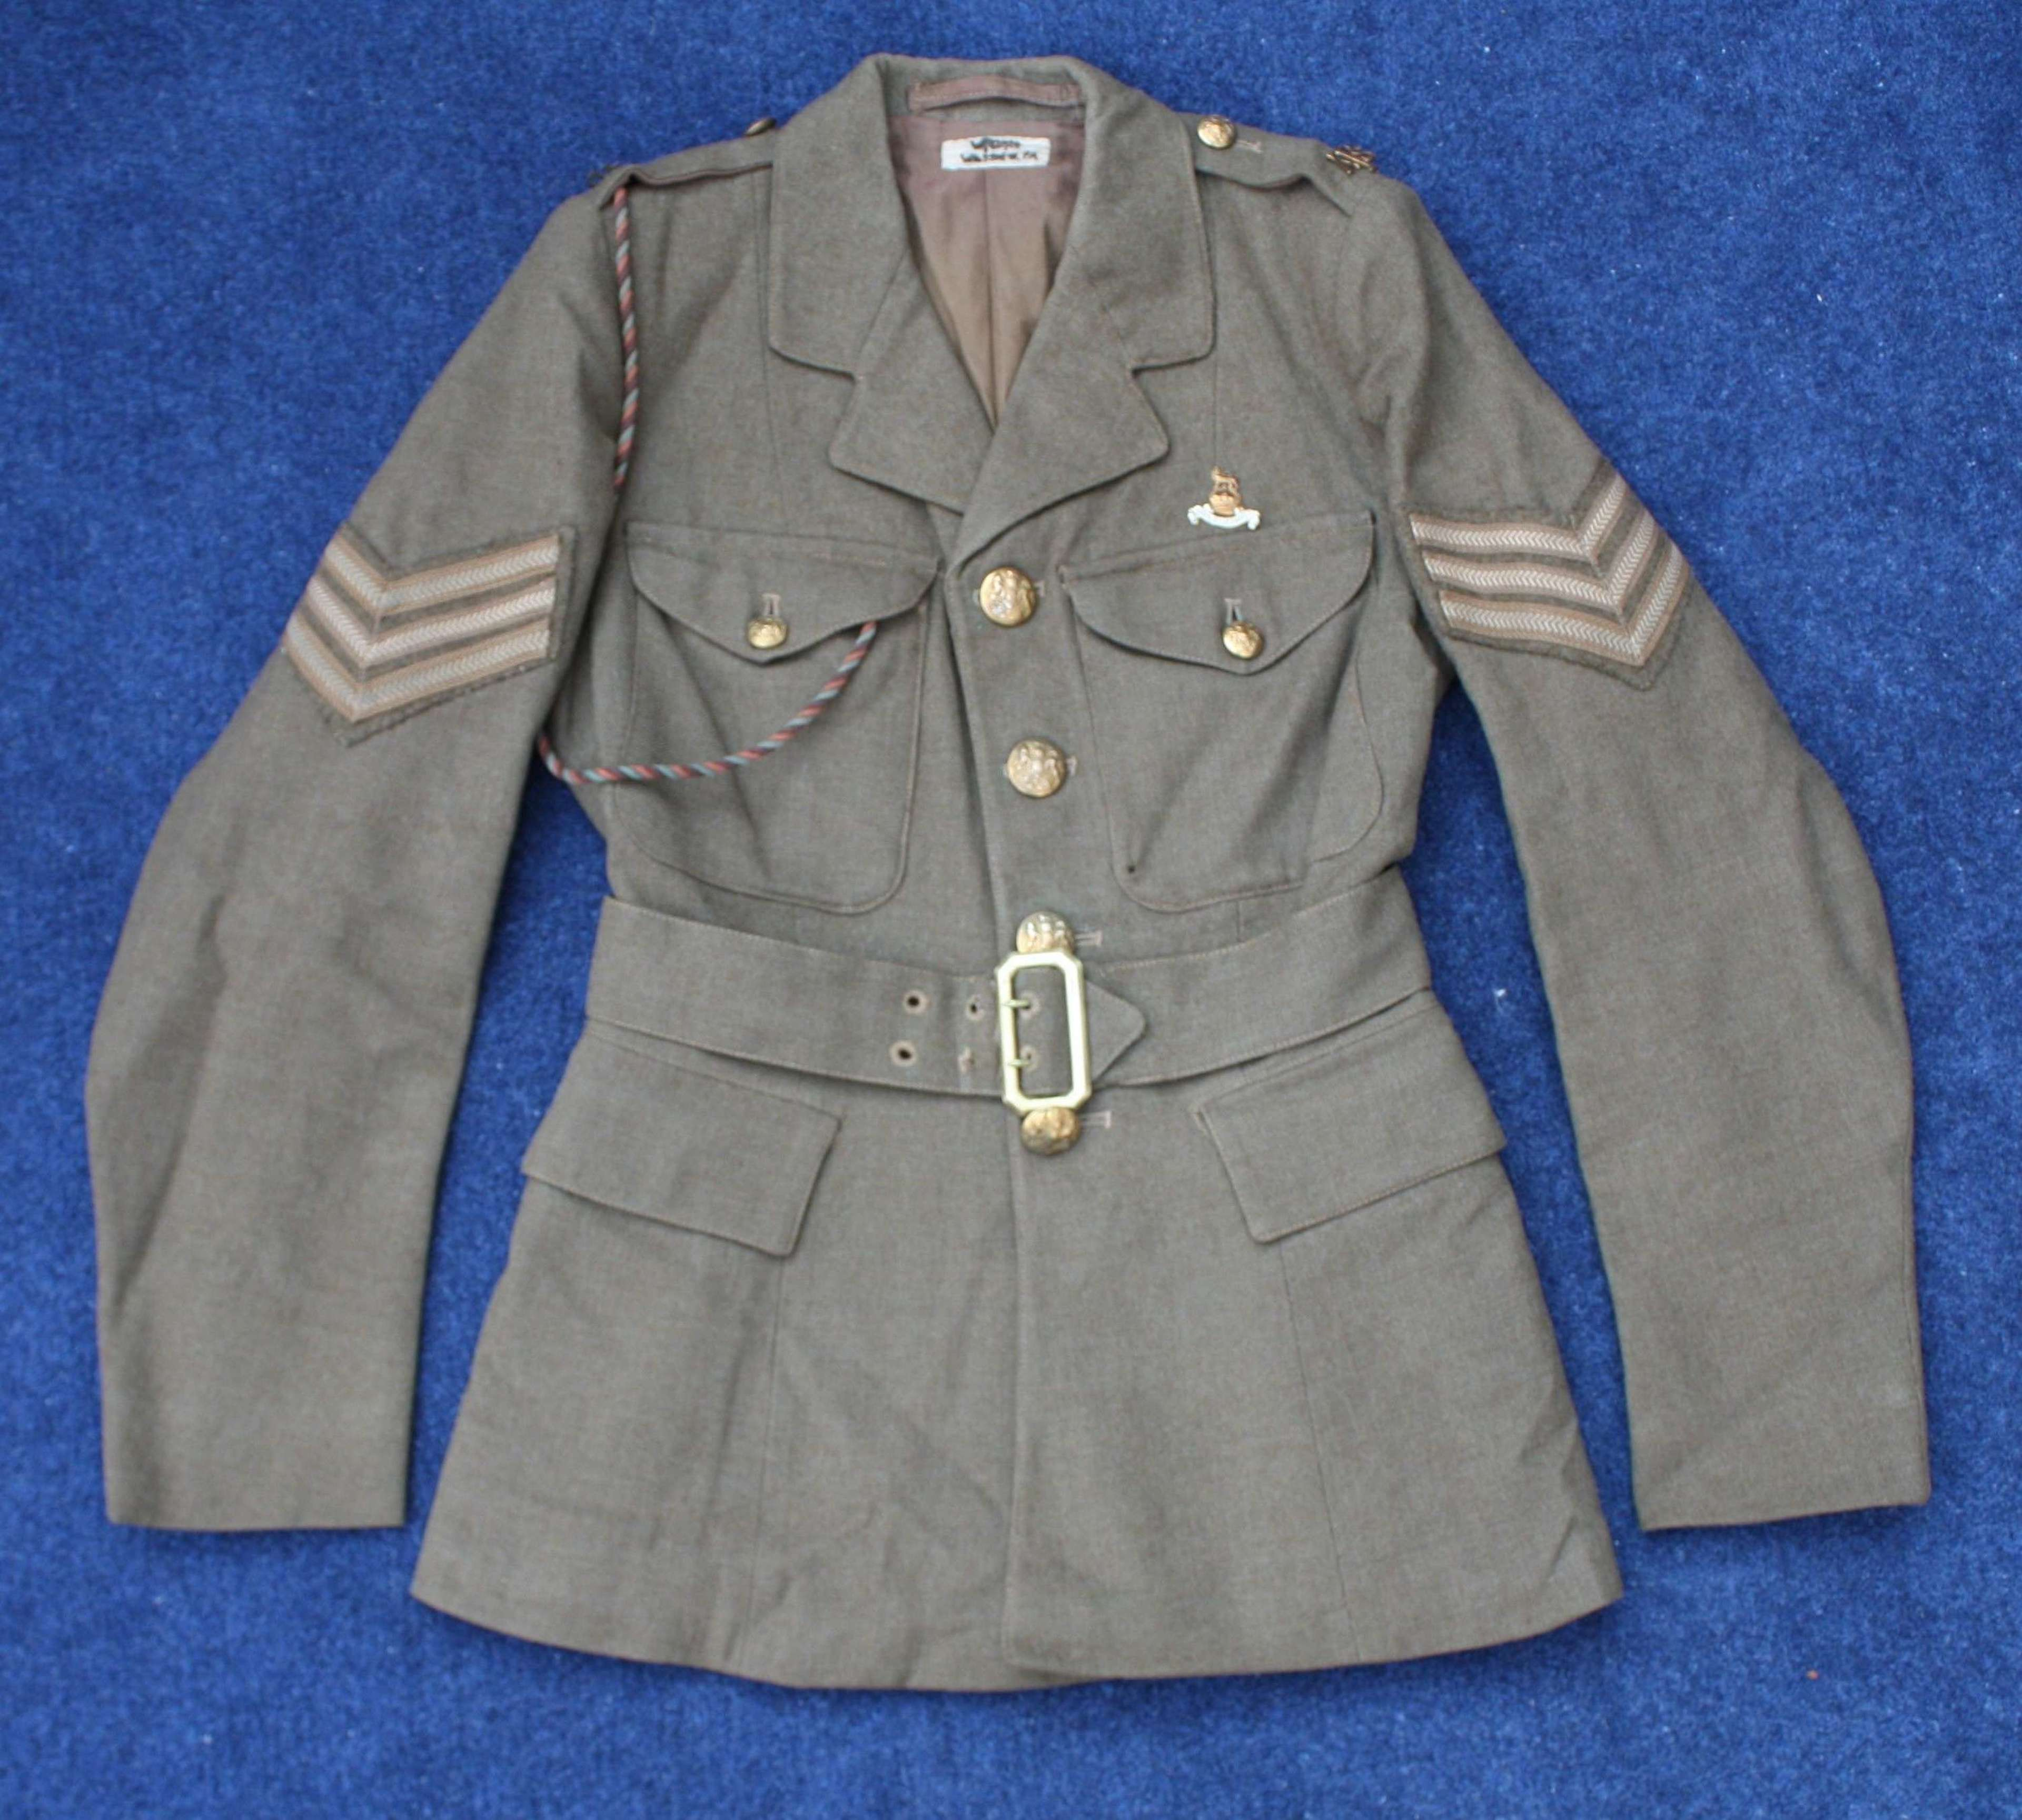 WW2 ATS WOMEN'S 'AUXILIARY TERRITORIAL SERVICE' 1943 DATED TUNIC